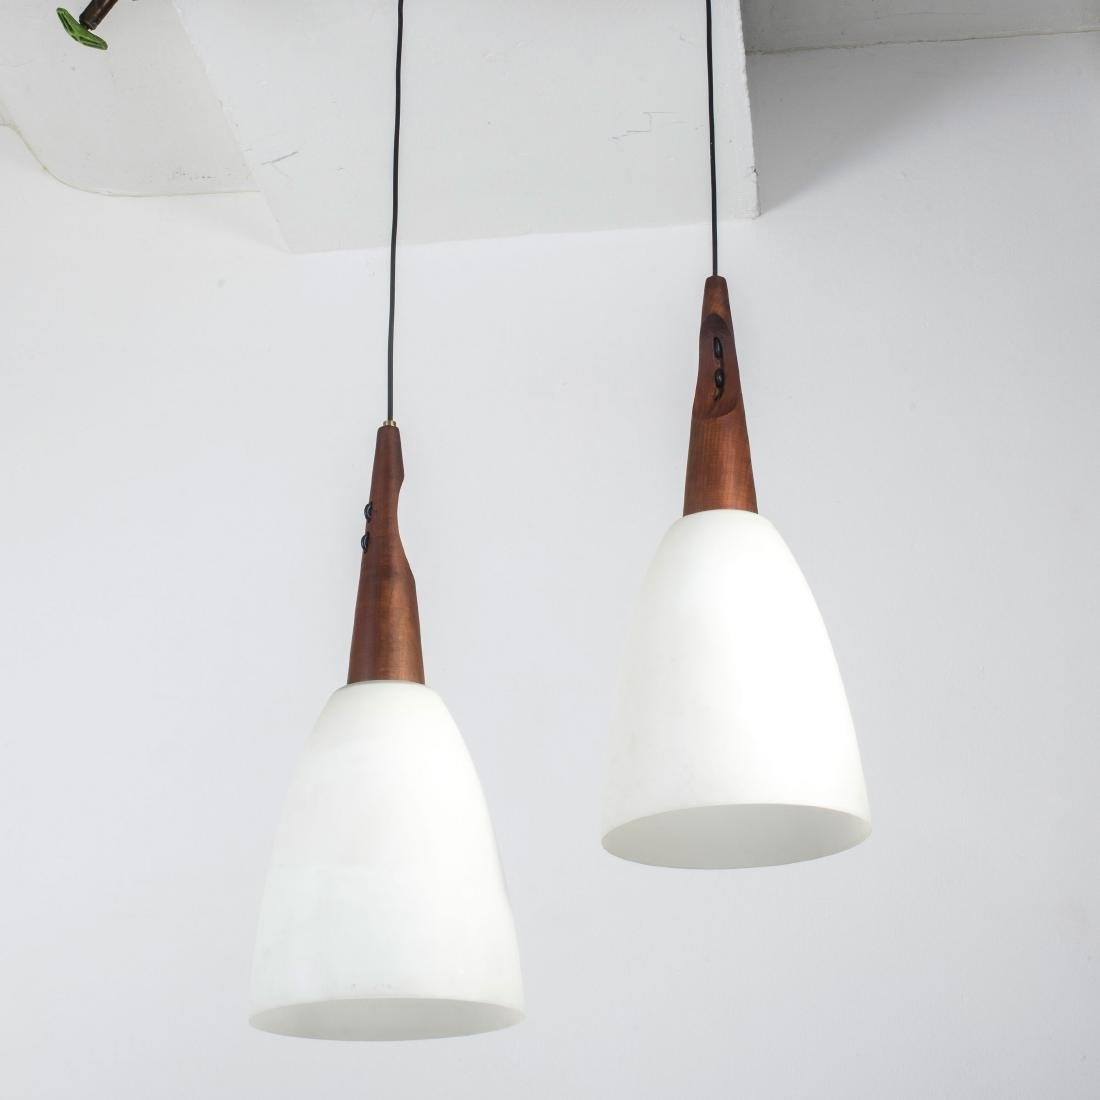 Two ceiling lights, c. 1958 - 3